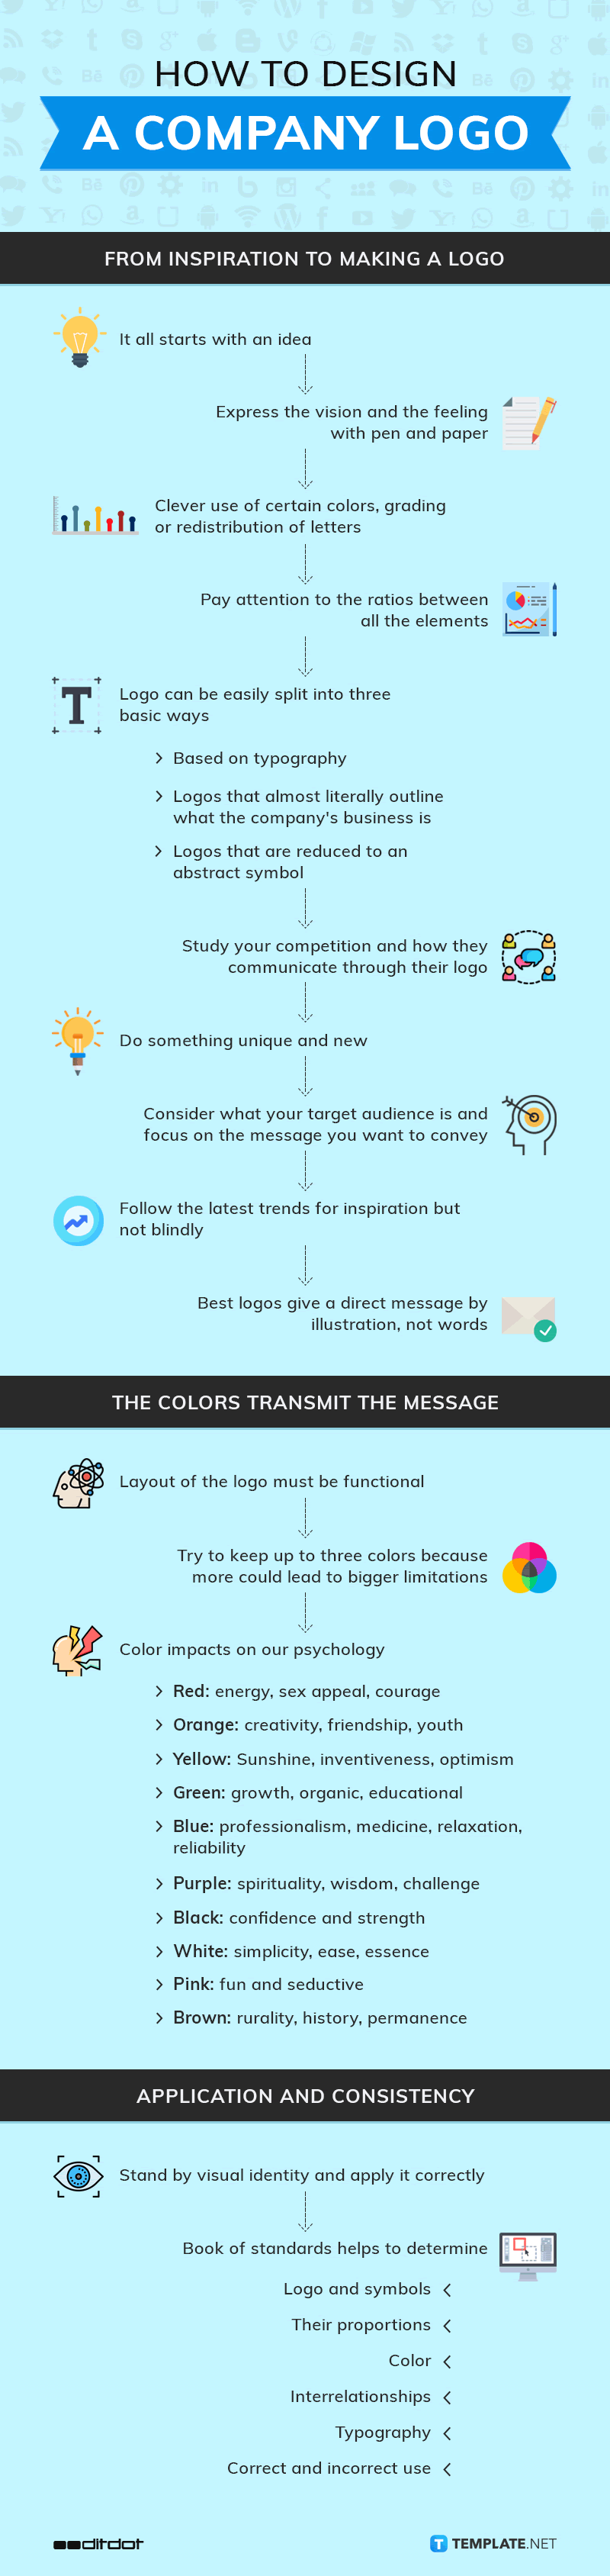 How to design a company logo infographic